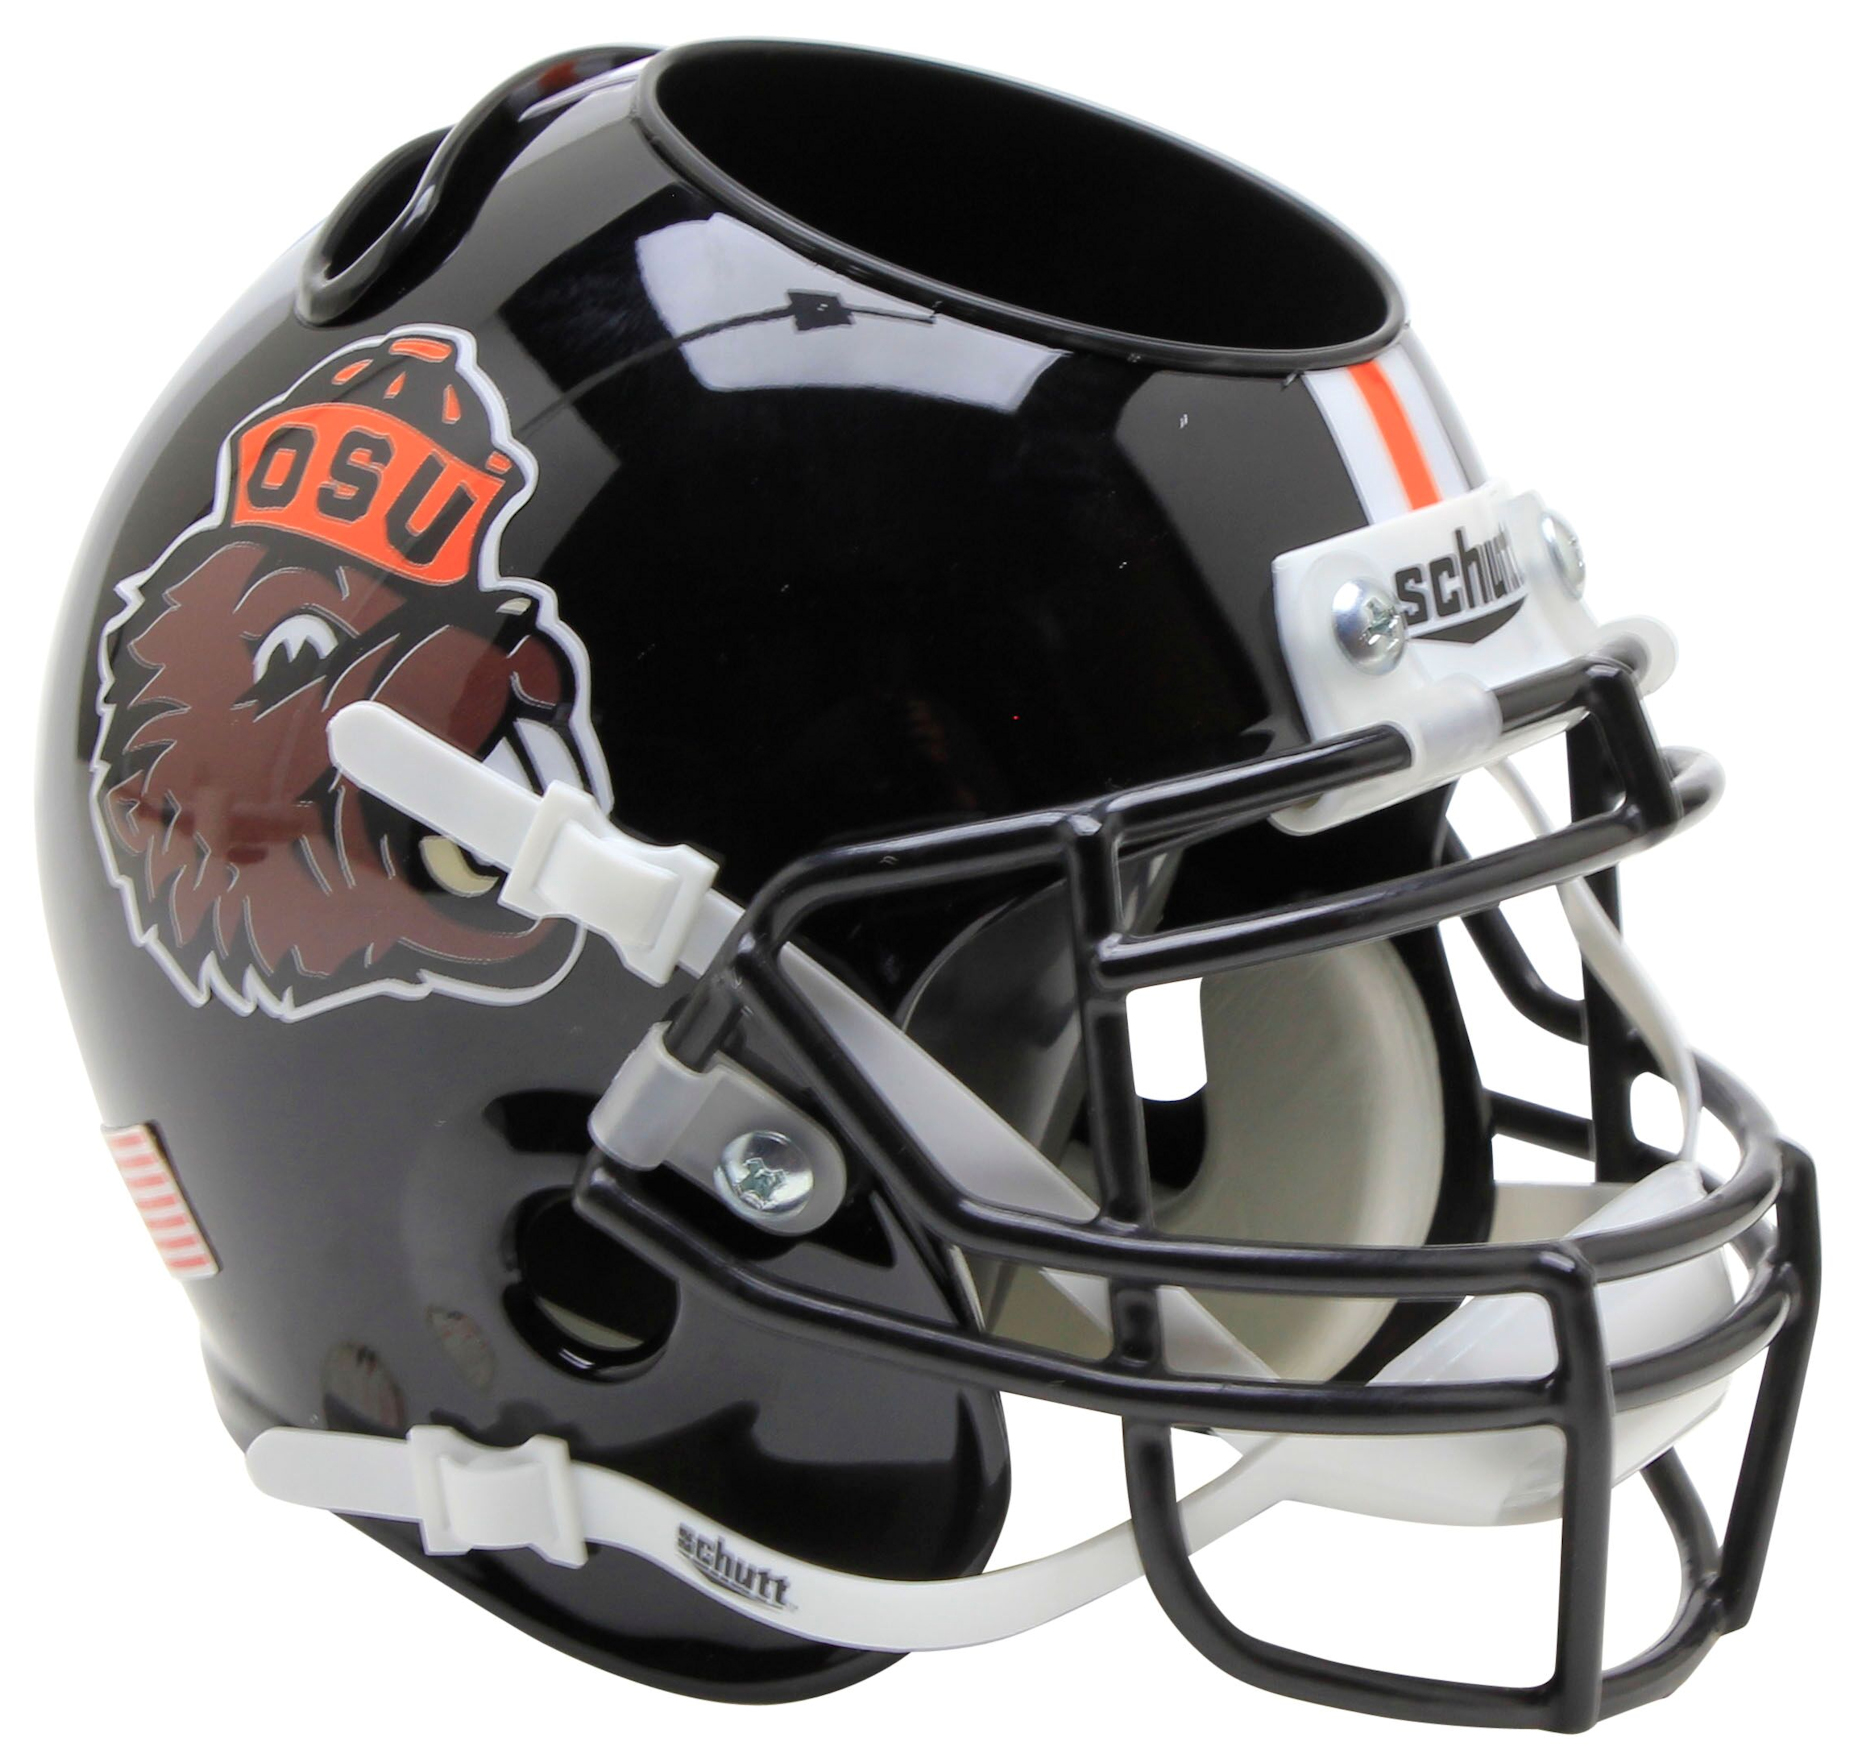 Oregon State Beavers Miniature Football Helmet Desk Caddy <B>Benny Beaver</B>